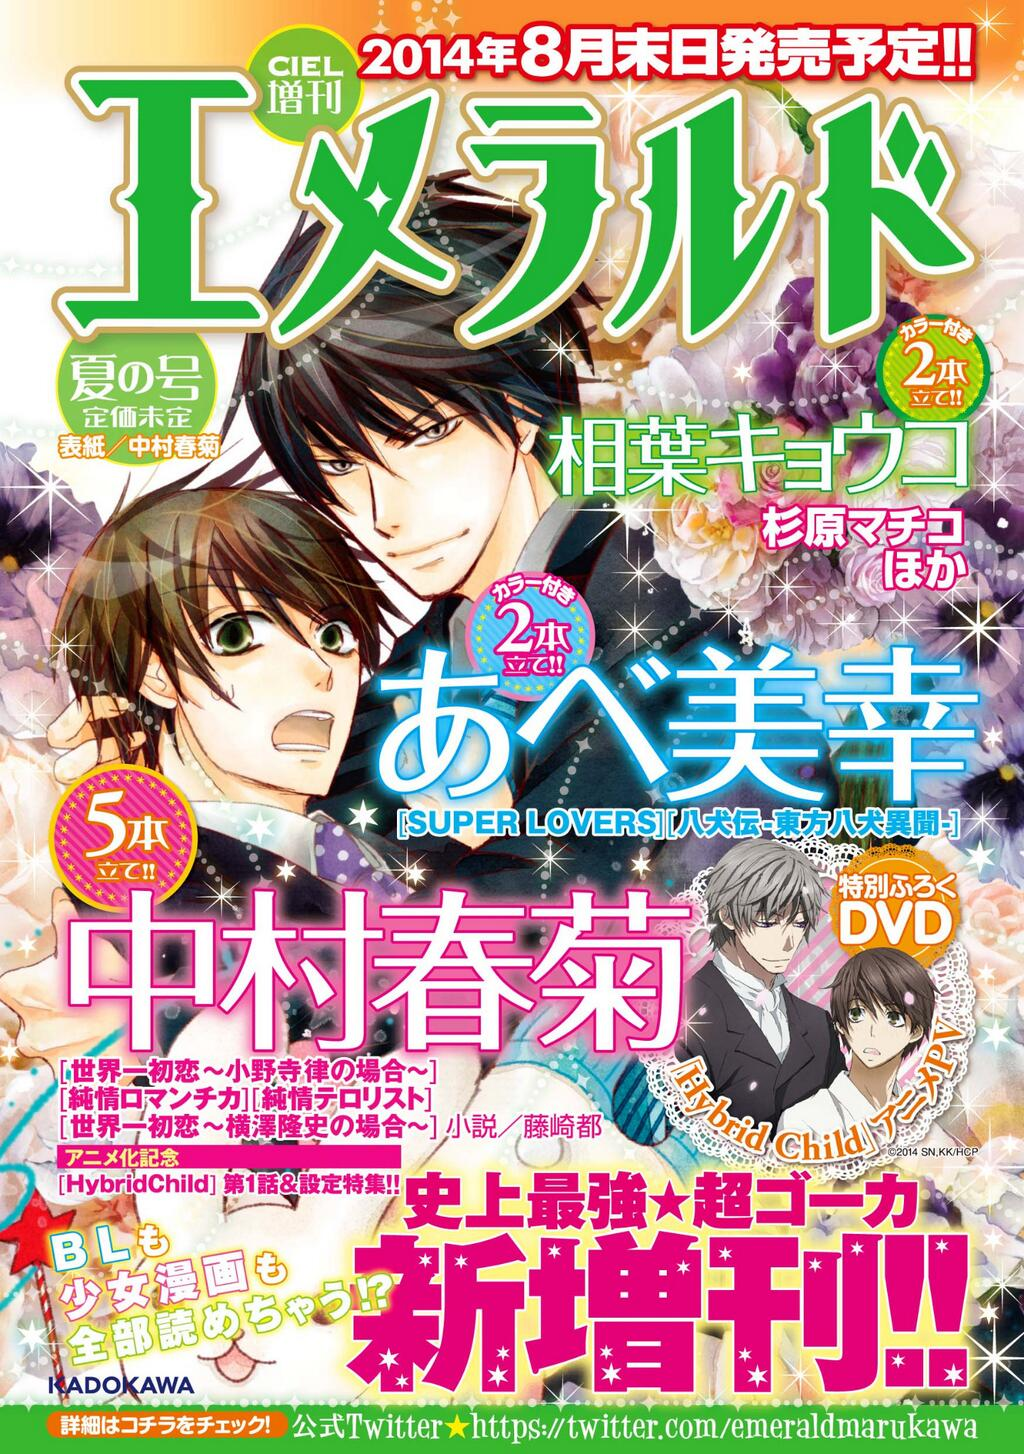 http://www.manga-news.com/public/images/mags/emerald-mag-1.jpg